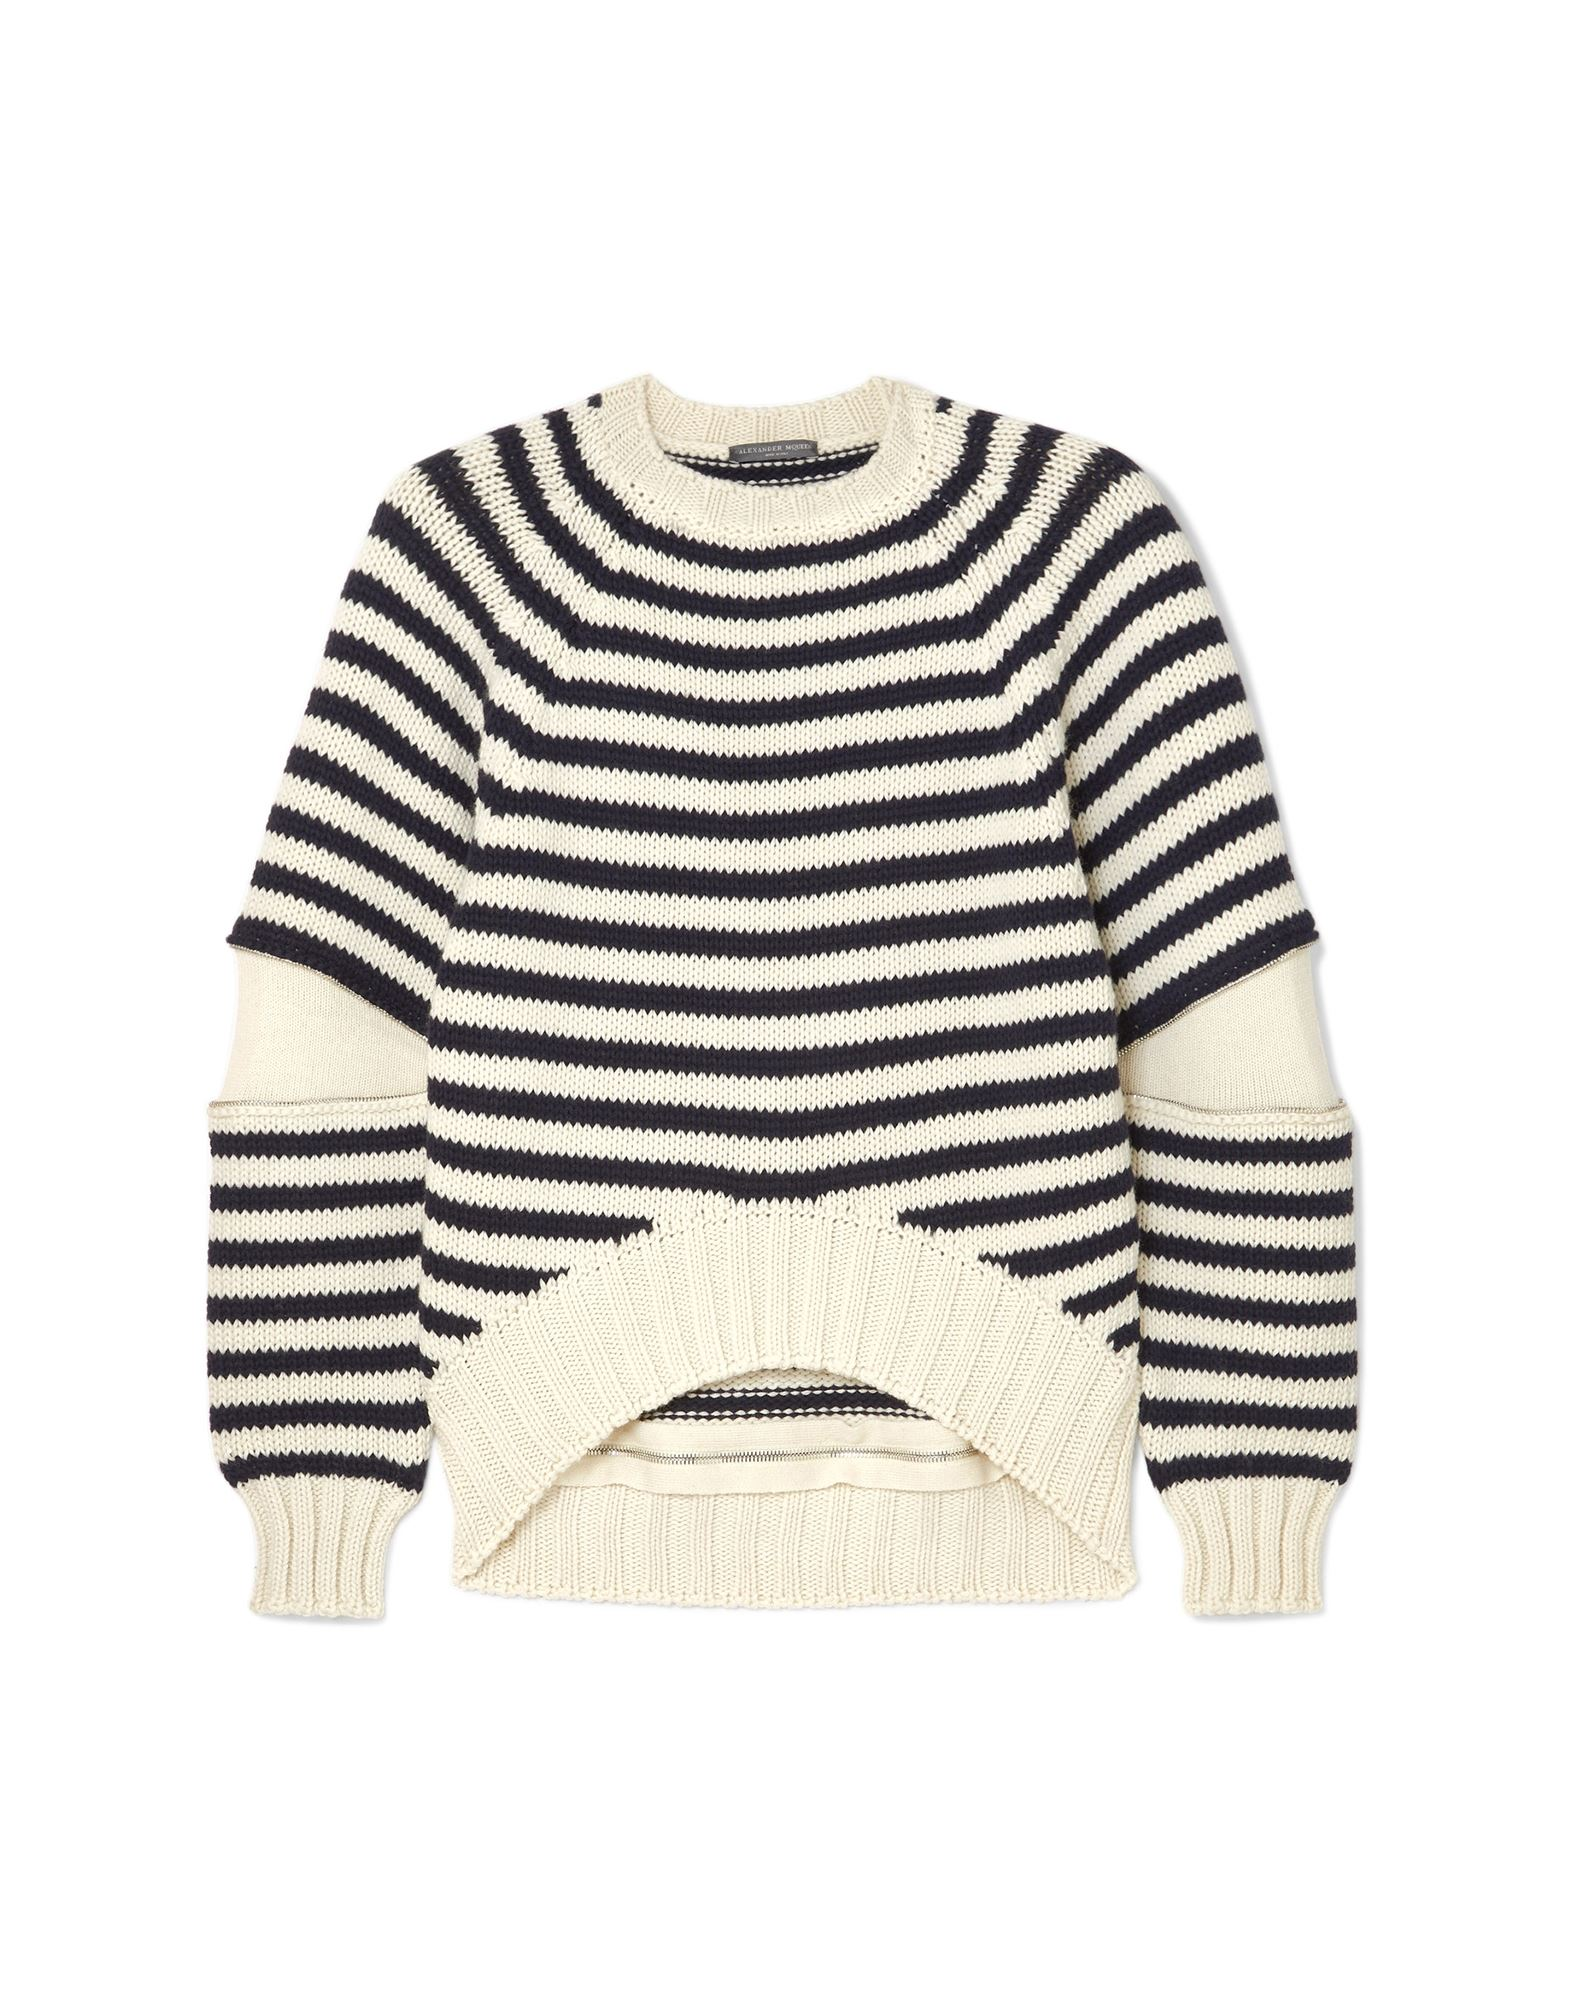 ALEXANDER MCQUEEN Sweaters. knitted, contrasting applications, lightweight knit, round collar, stripes, long sleeves, no pockets, small sized. 100% Wool